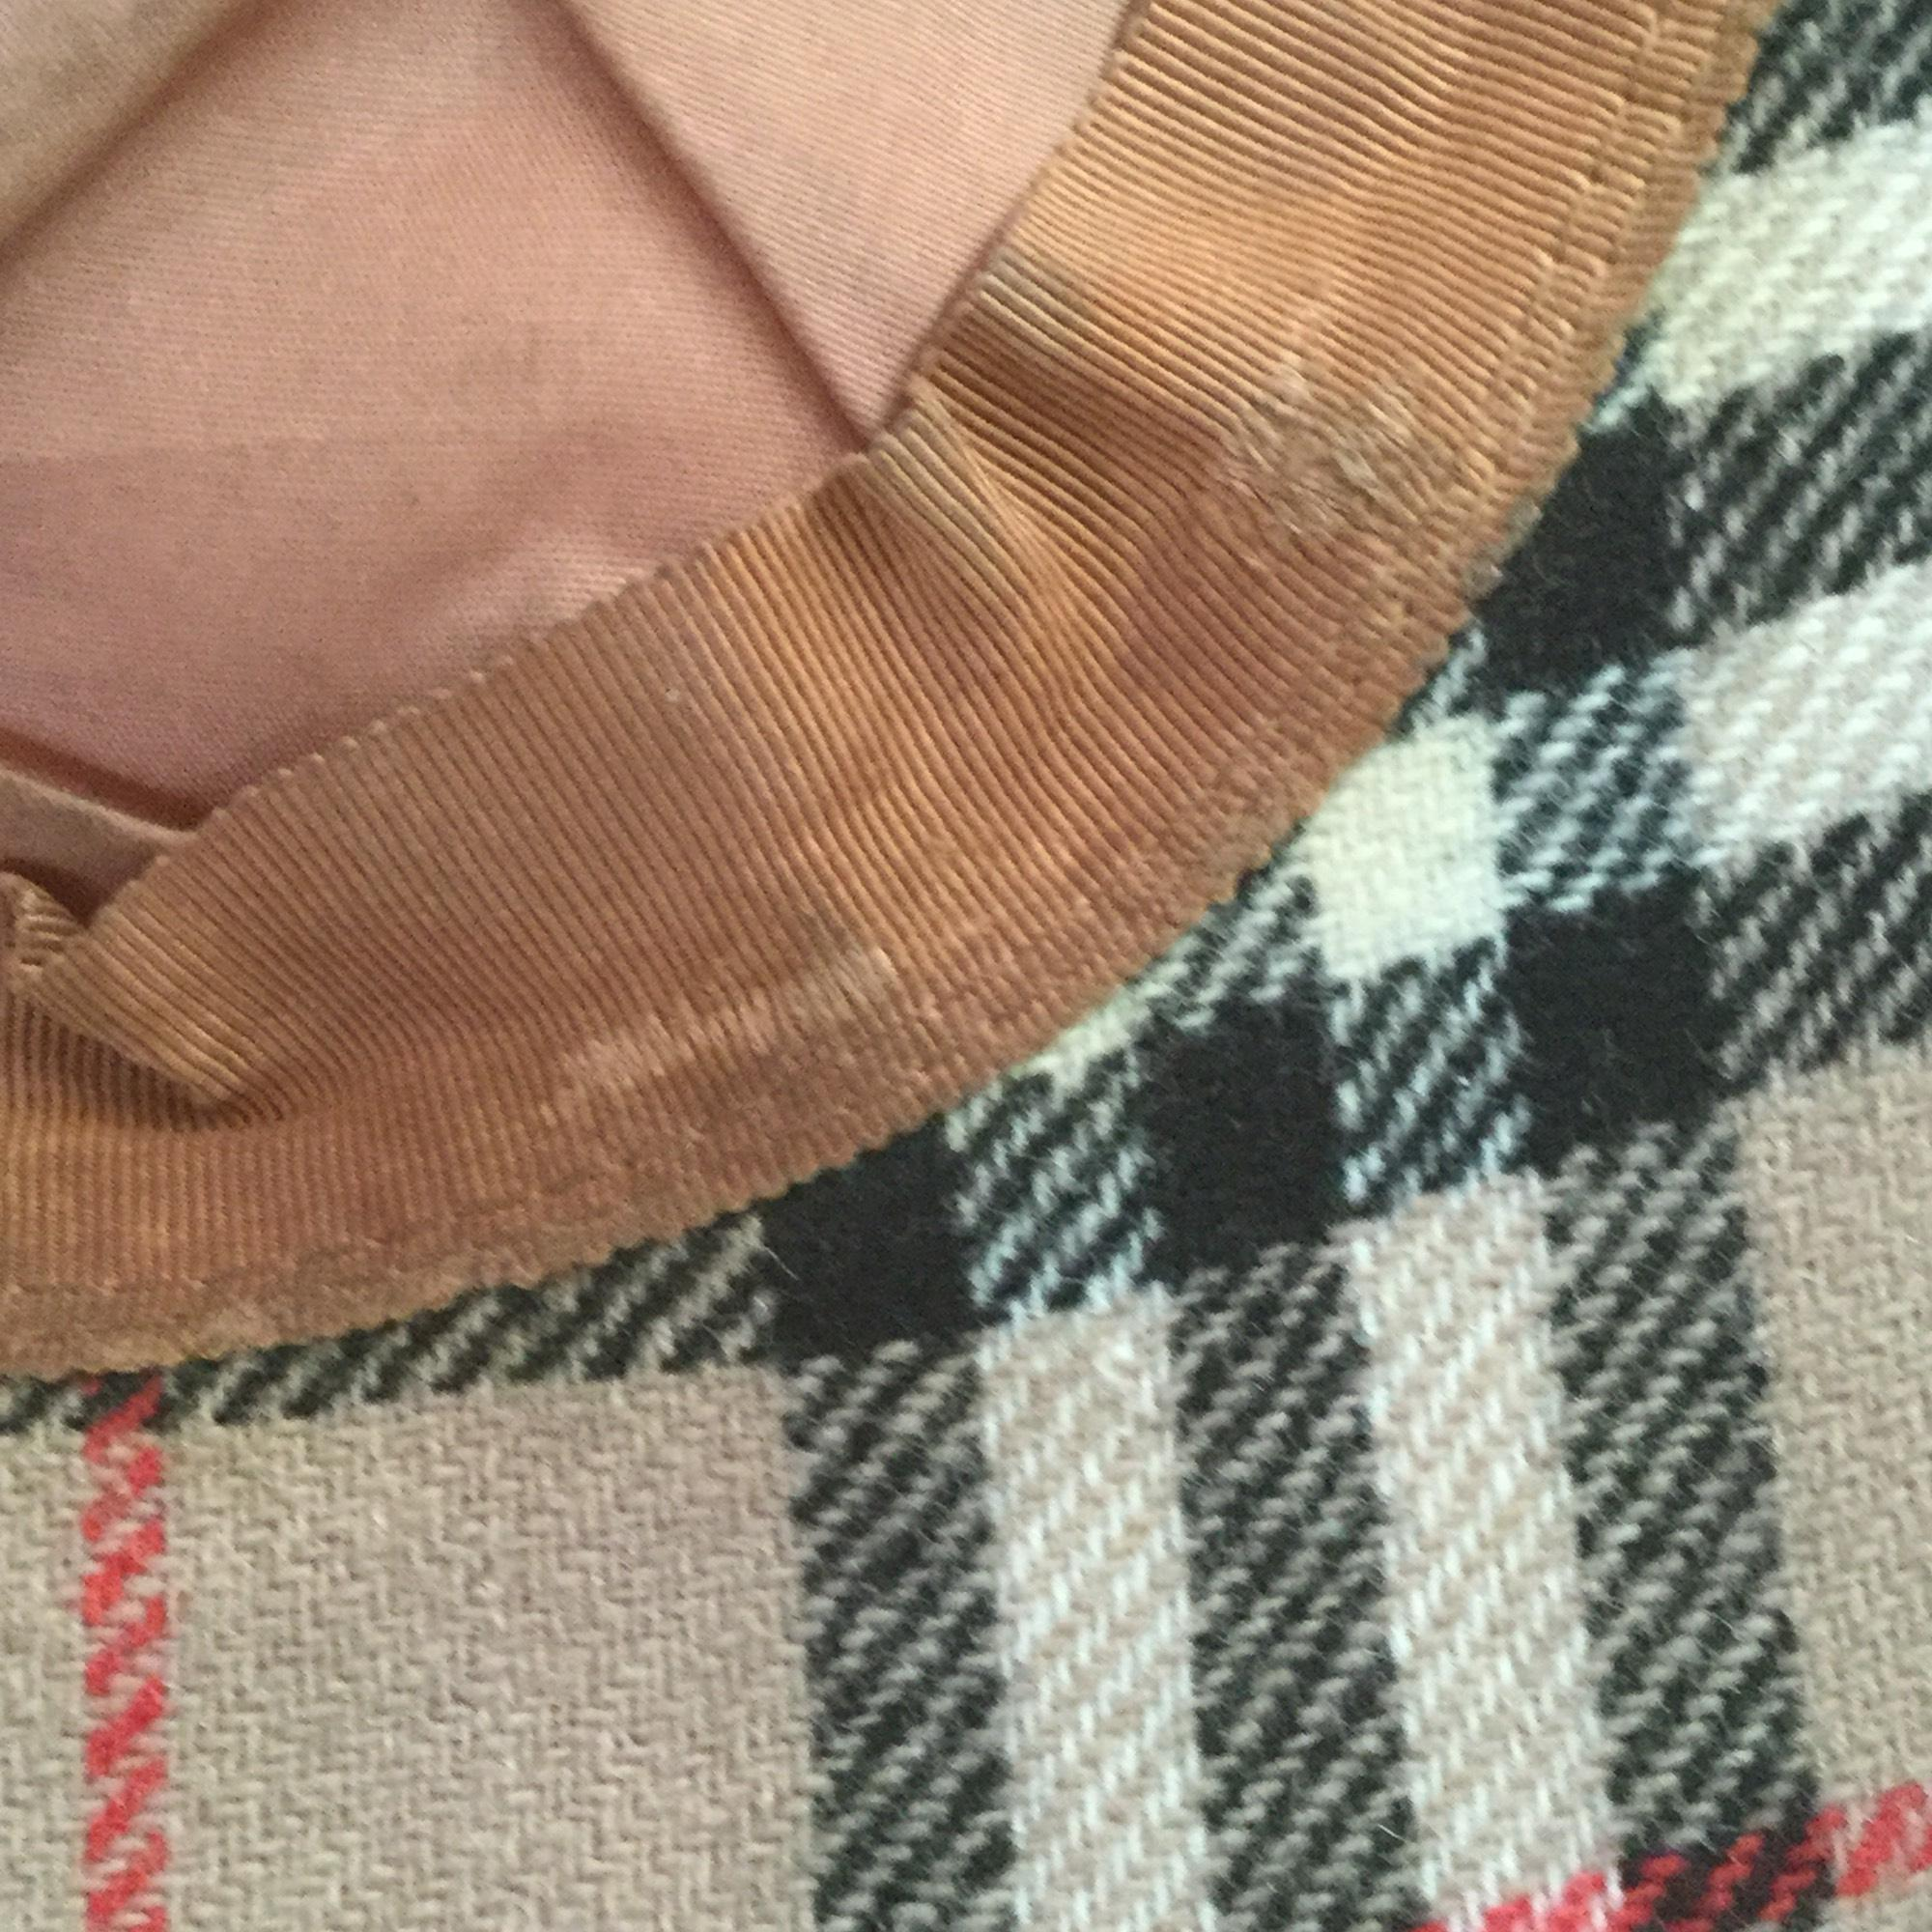 f21255a23b6 ... low cost burberry vintage burberry newsboy cap scarf. 123456789101112  01593 4d687